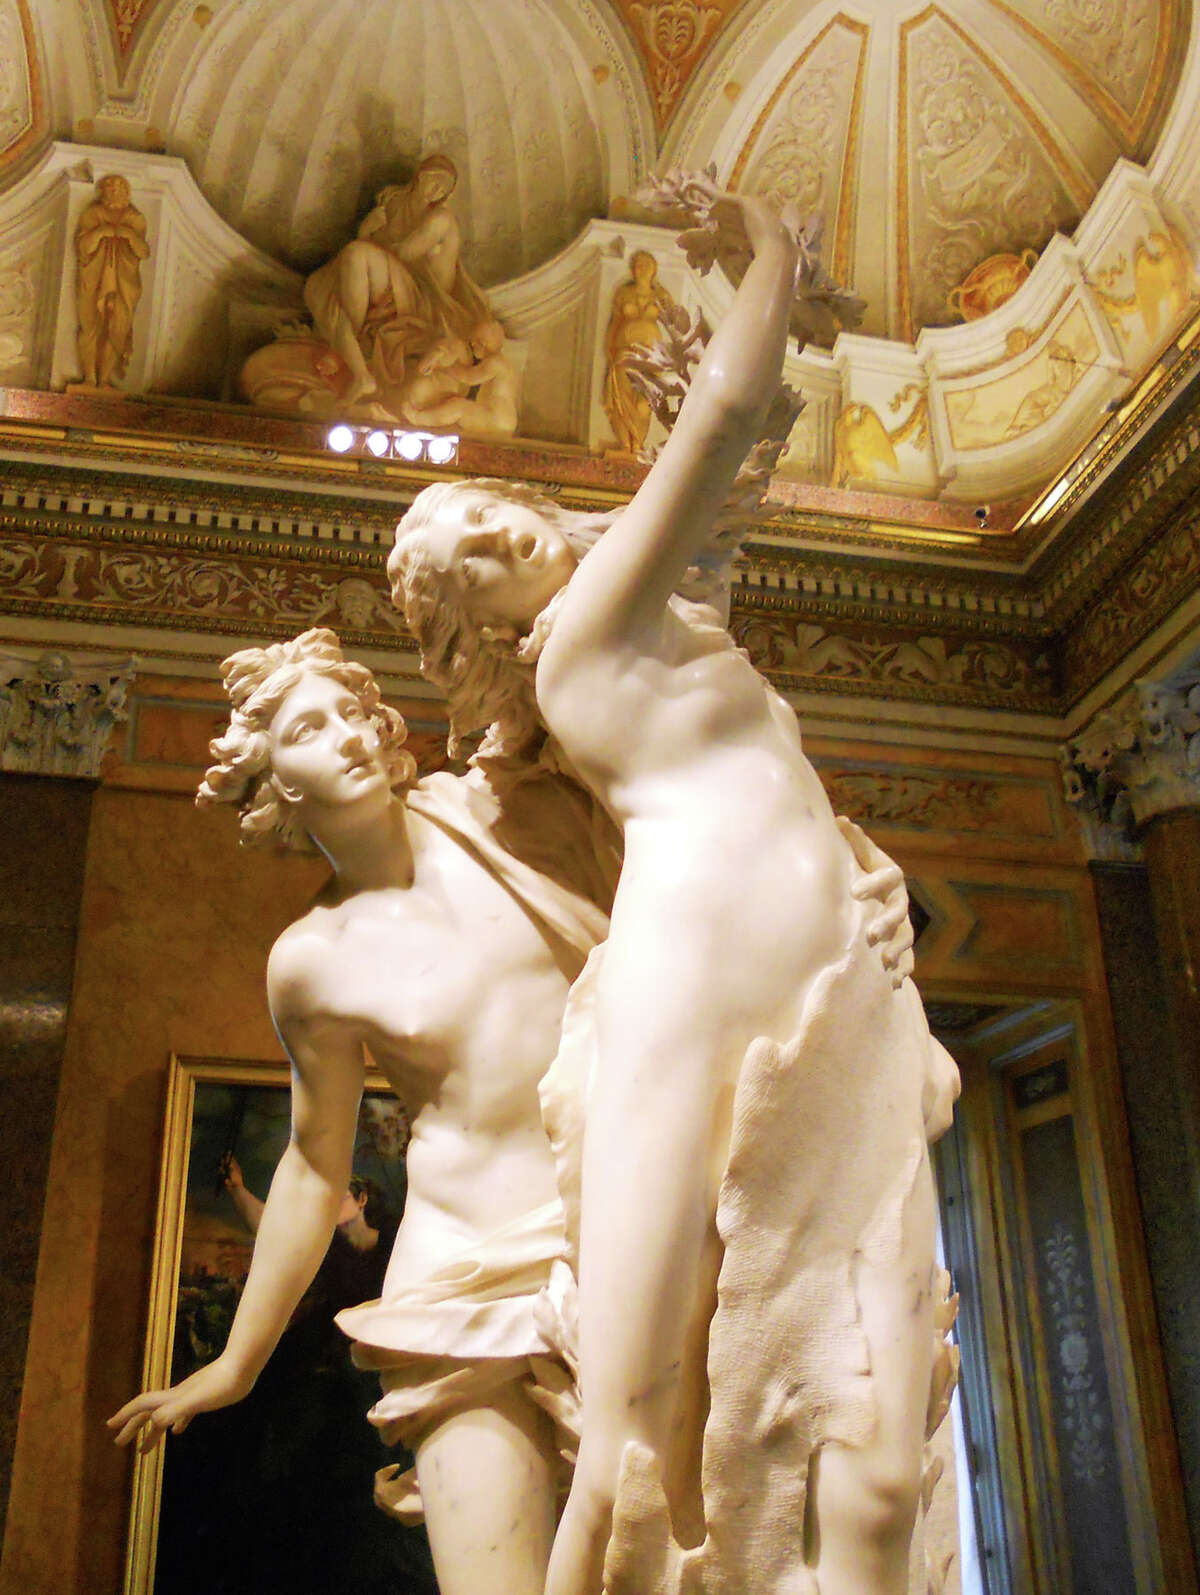 The Vatican doesn't have all the good art in Rome: Bernini's exquisite Apollo and Daphne belongs to the Borghese Gallery.